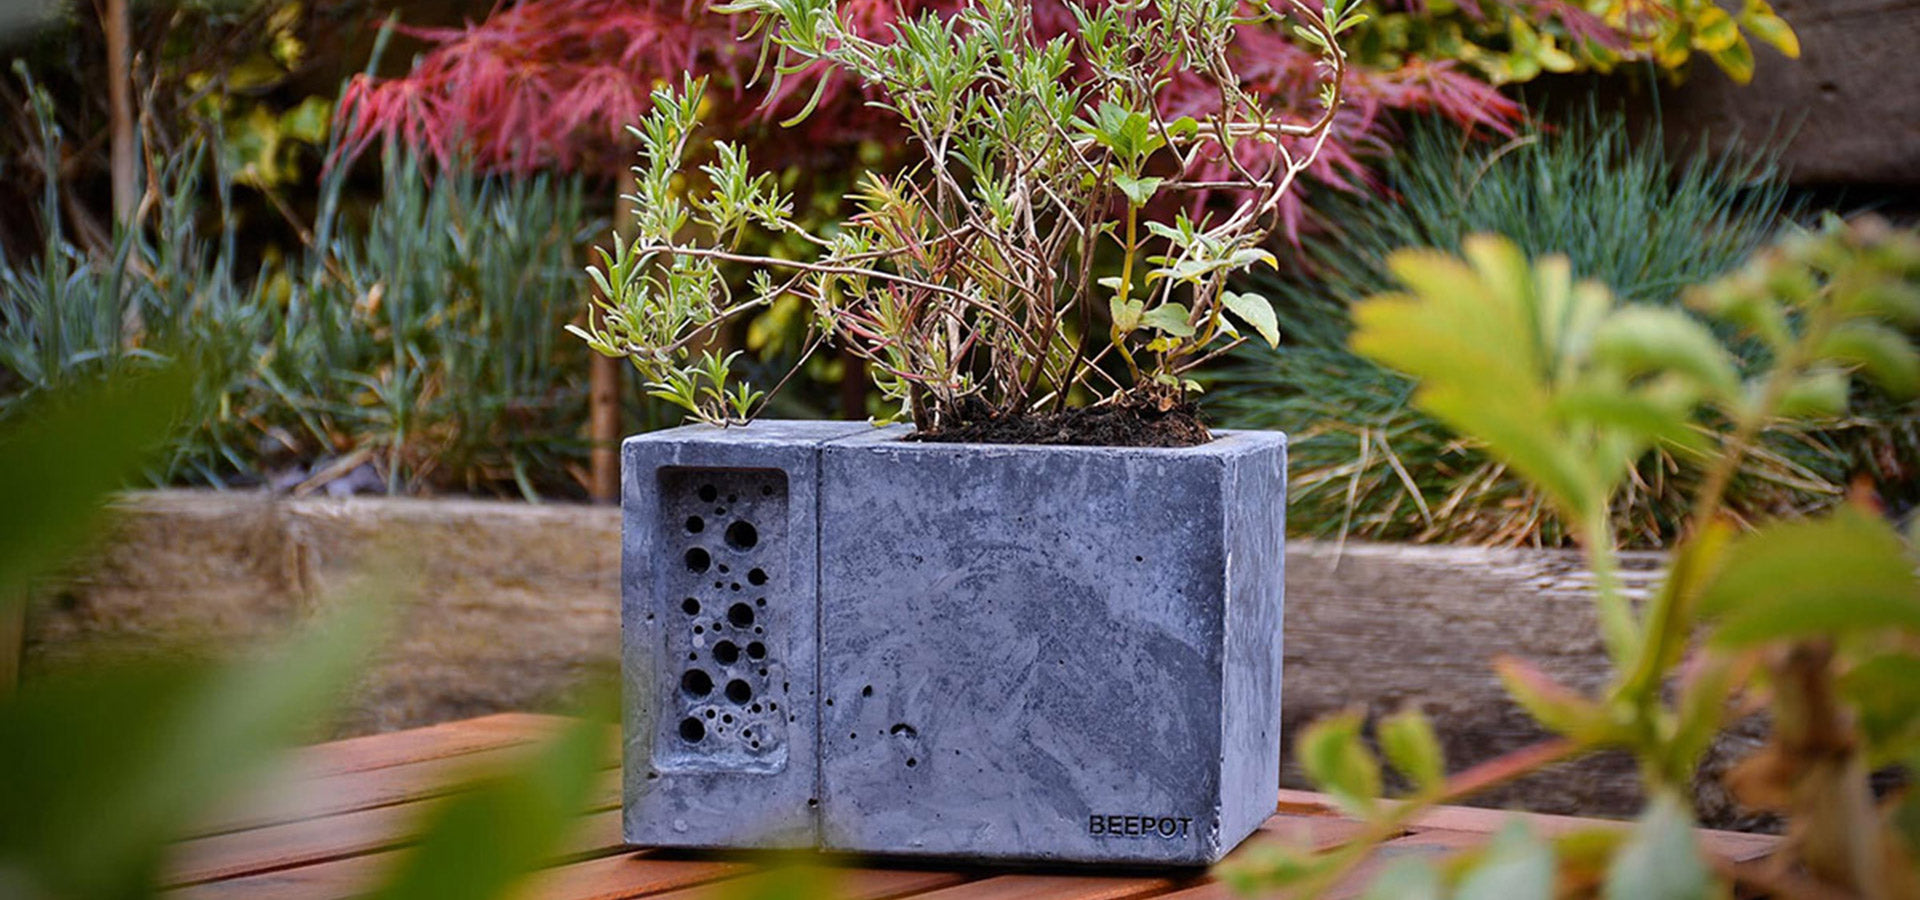 Beepot with wildlife friendly planting